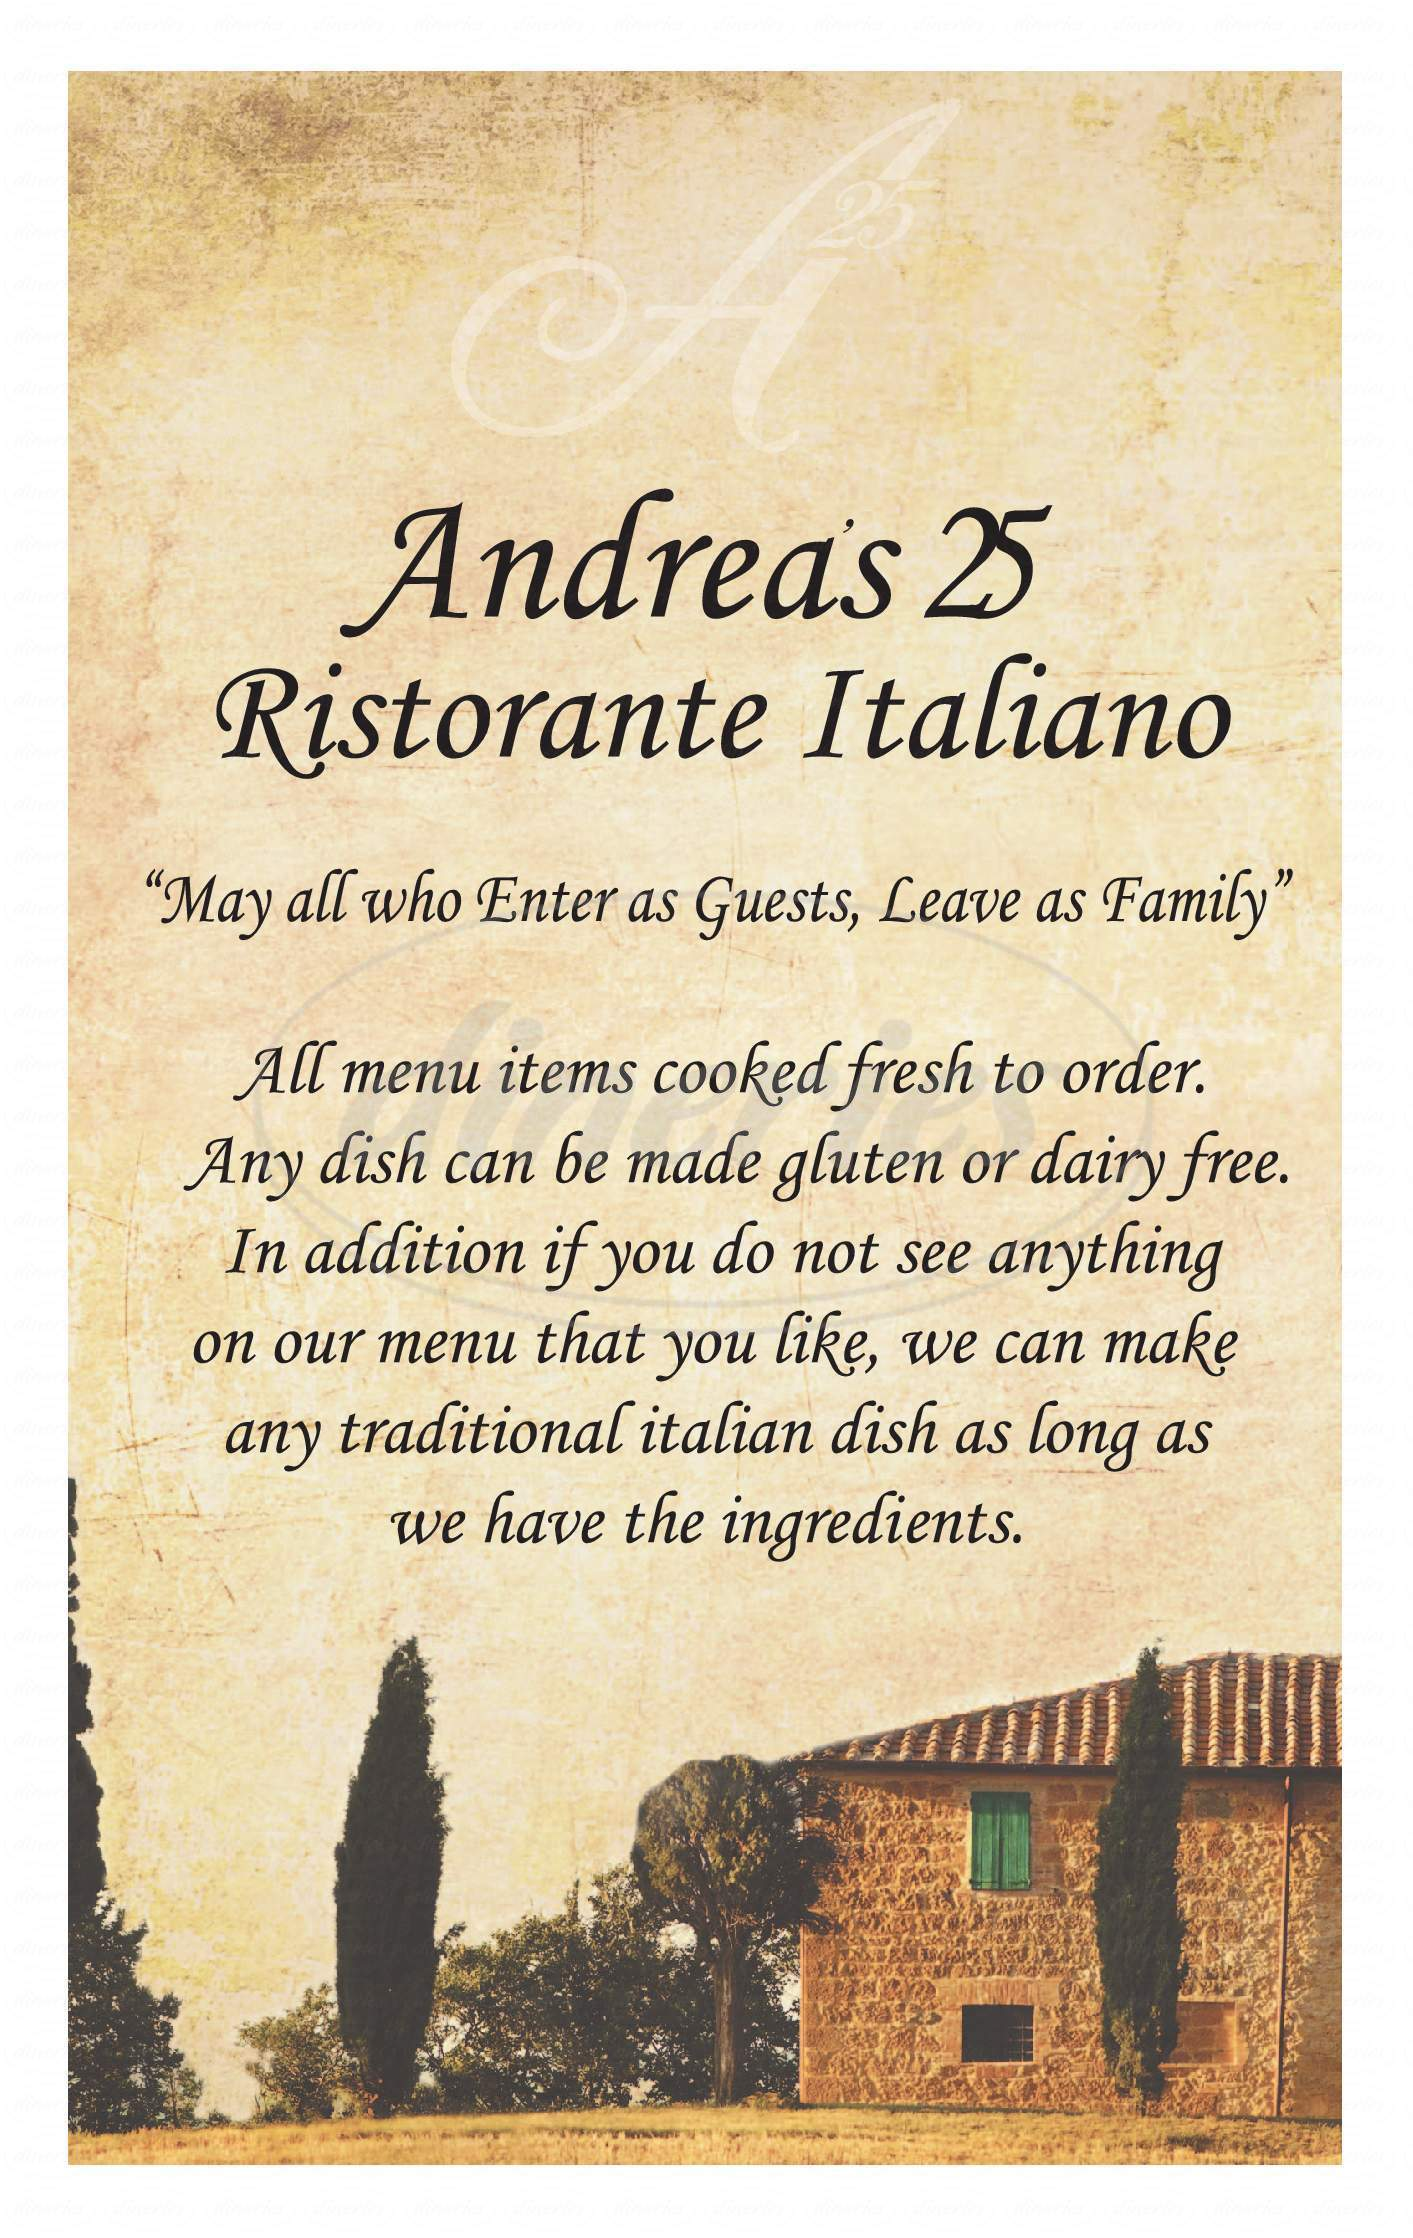 menu for Andrea's 25